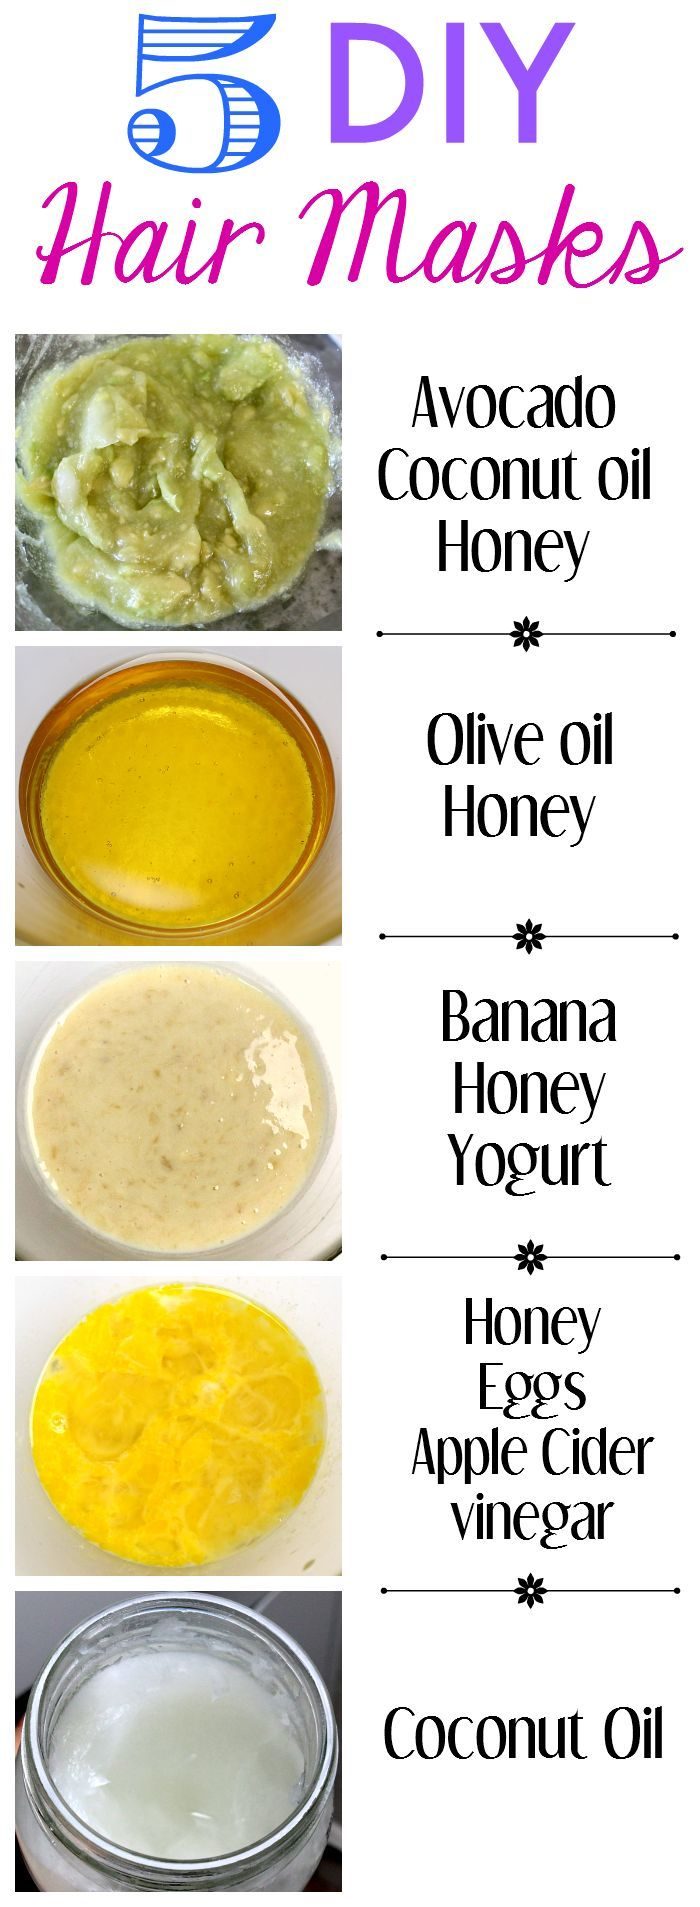 5 simple DIY hair mask recipes with three or less ingredients.